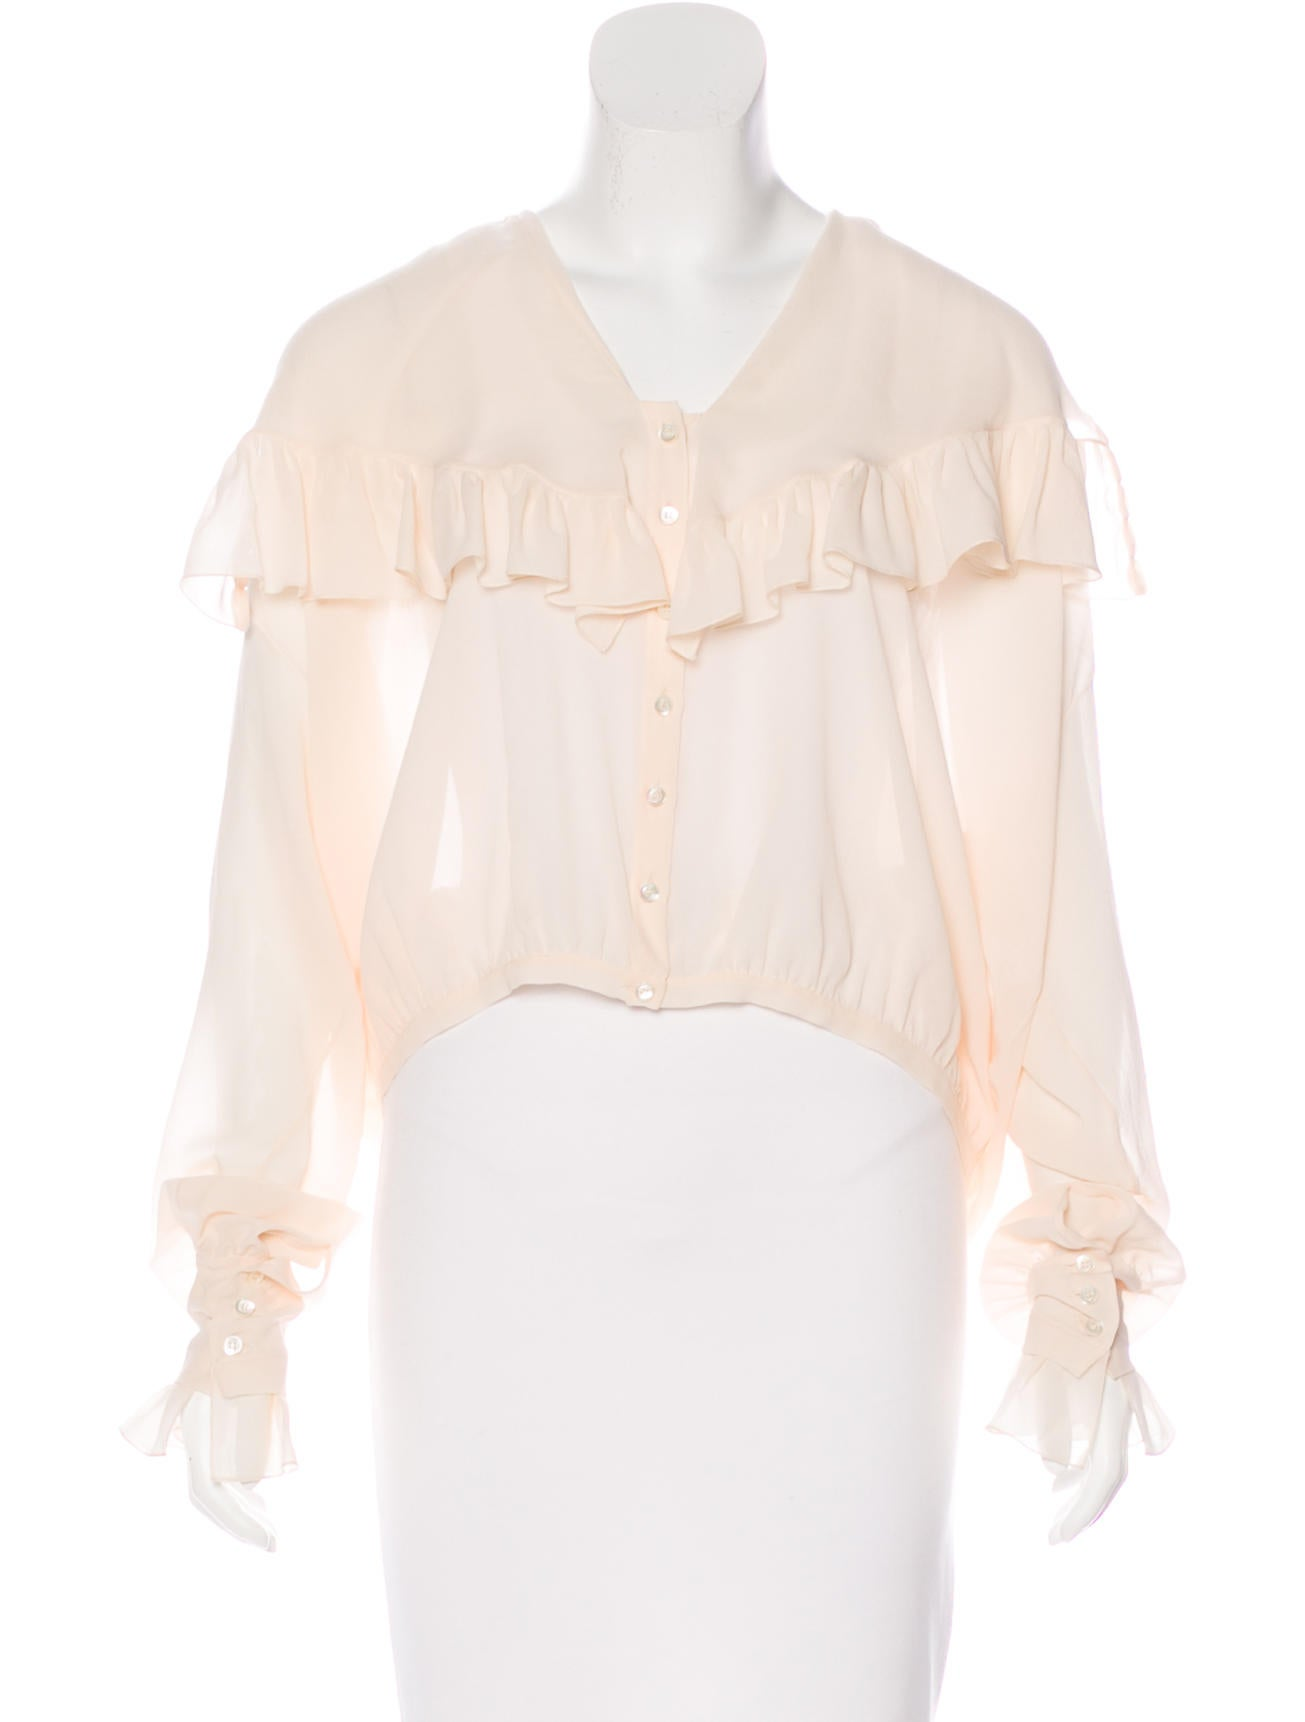 Christian dior silk button up blouse clothing chr62745 for Christian dior button up shirt